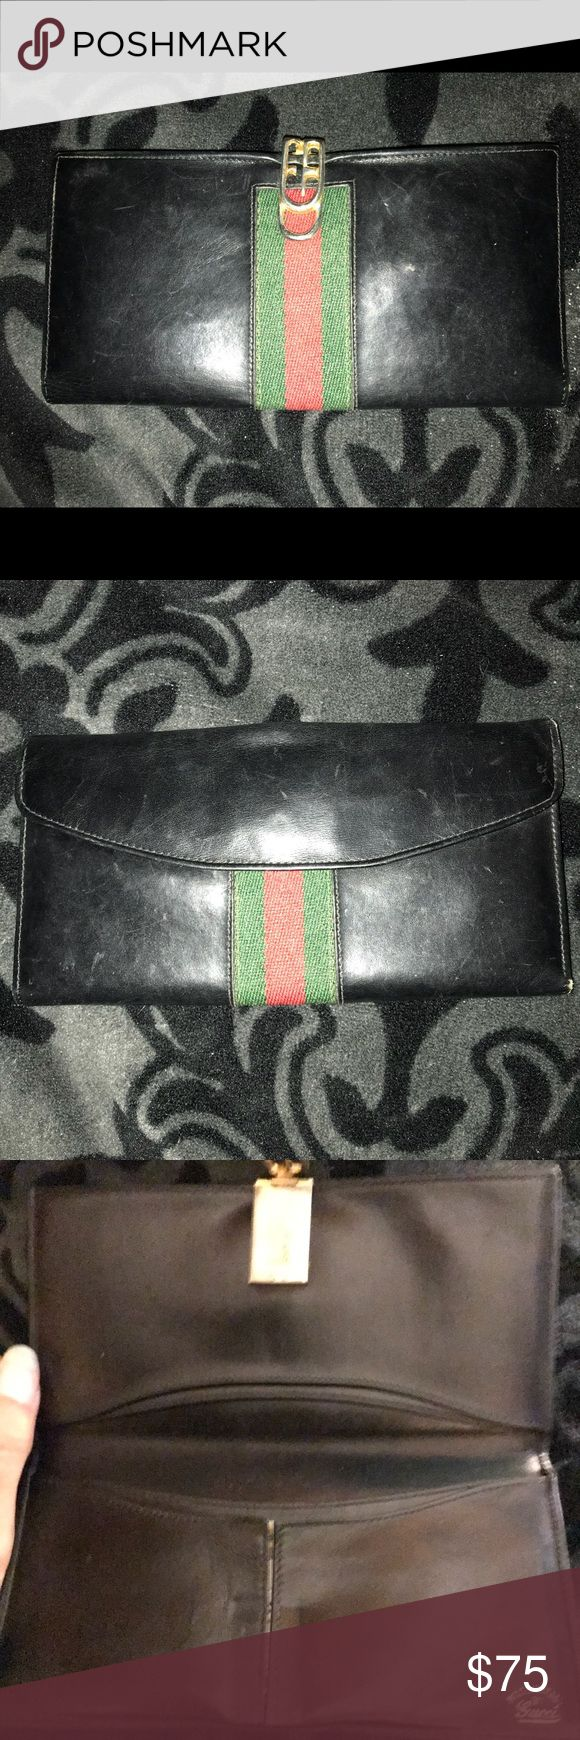 SUPER Vintage Gucci slim wallet This has bee used and is in the best shape possible for being a vintage item! Has markings but not bad for its years on the market and it is very old. Many pockets! And coin holder in the back snaps shut. The clasp in the front is for opening and closing. Enjoy this slim wallet! It fits into nearly every bag! Gucci Bags Wallets